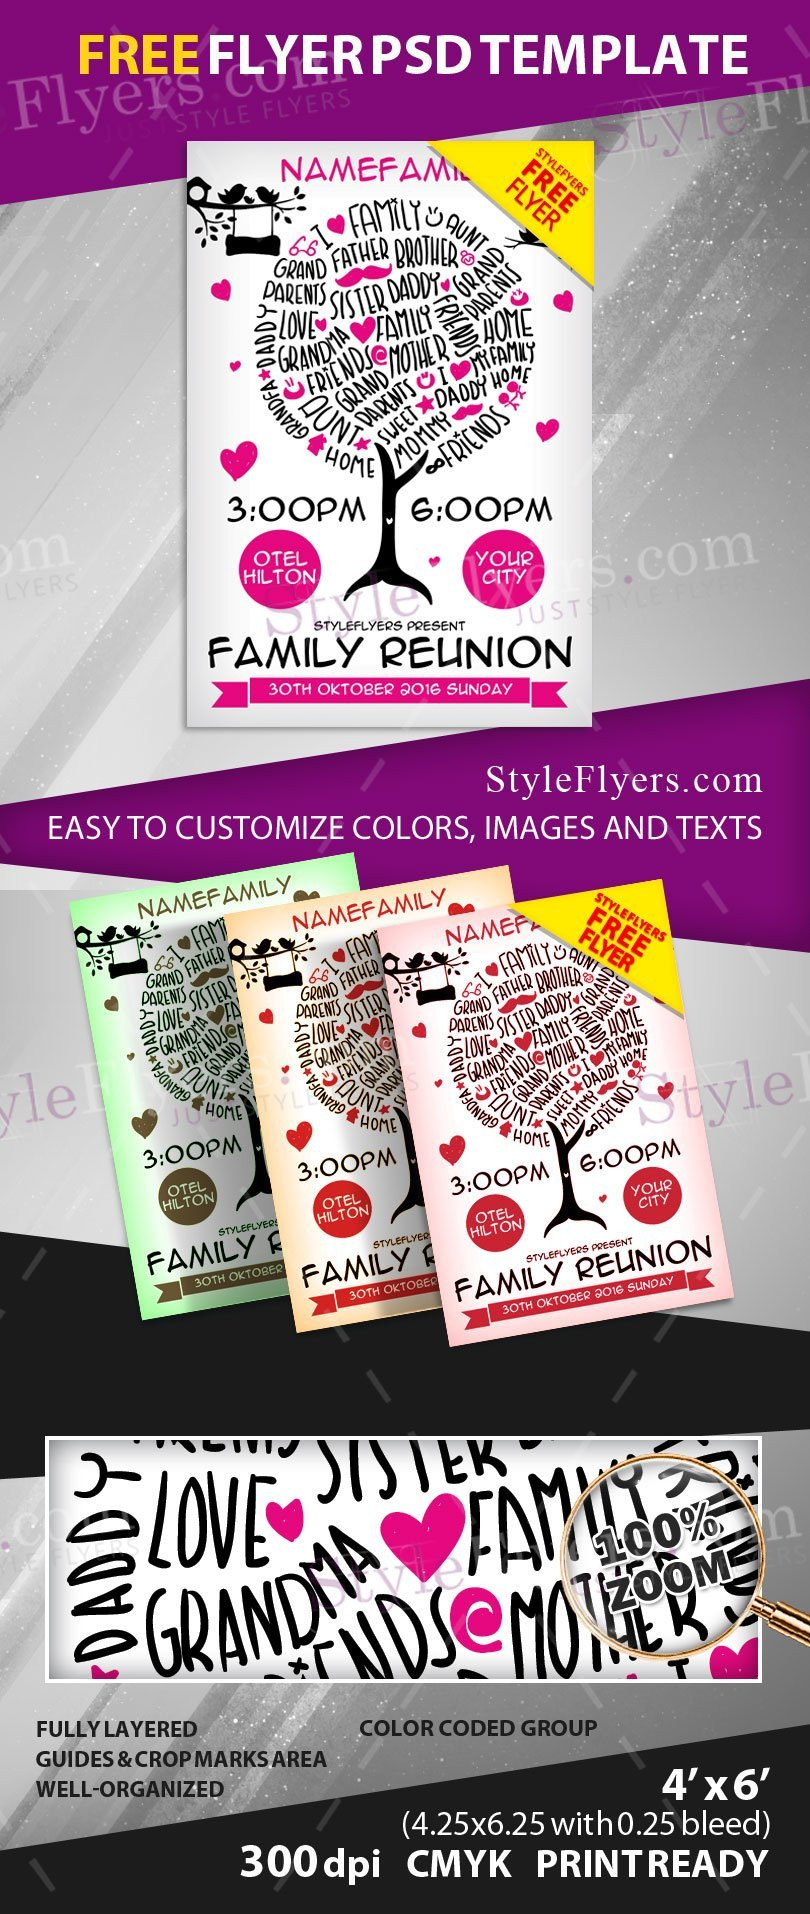 Family Reunion Flyers Templates Family Reunion Free Psd Flyer Template Free Download